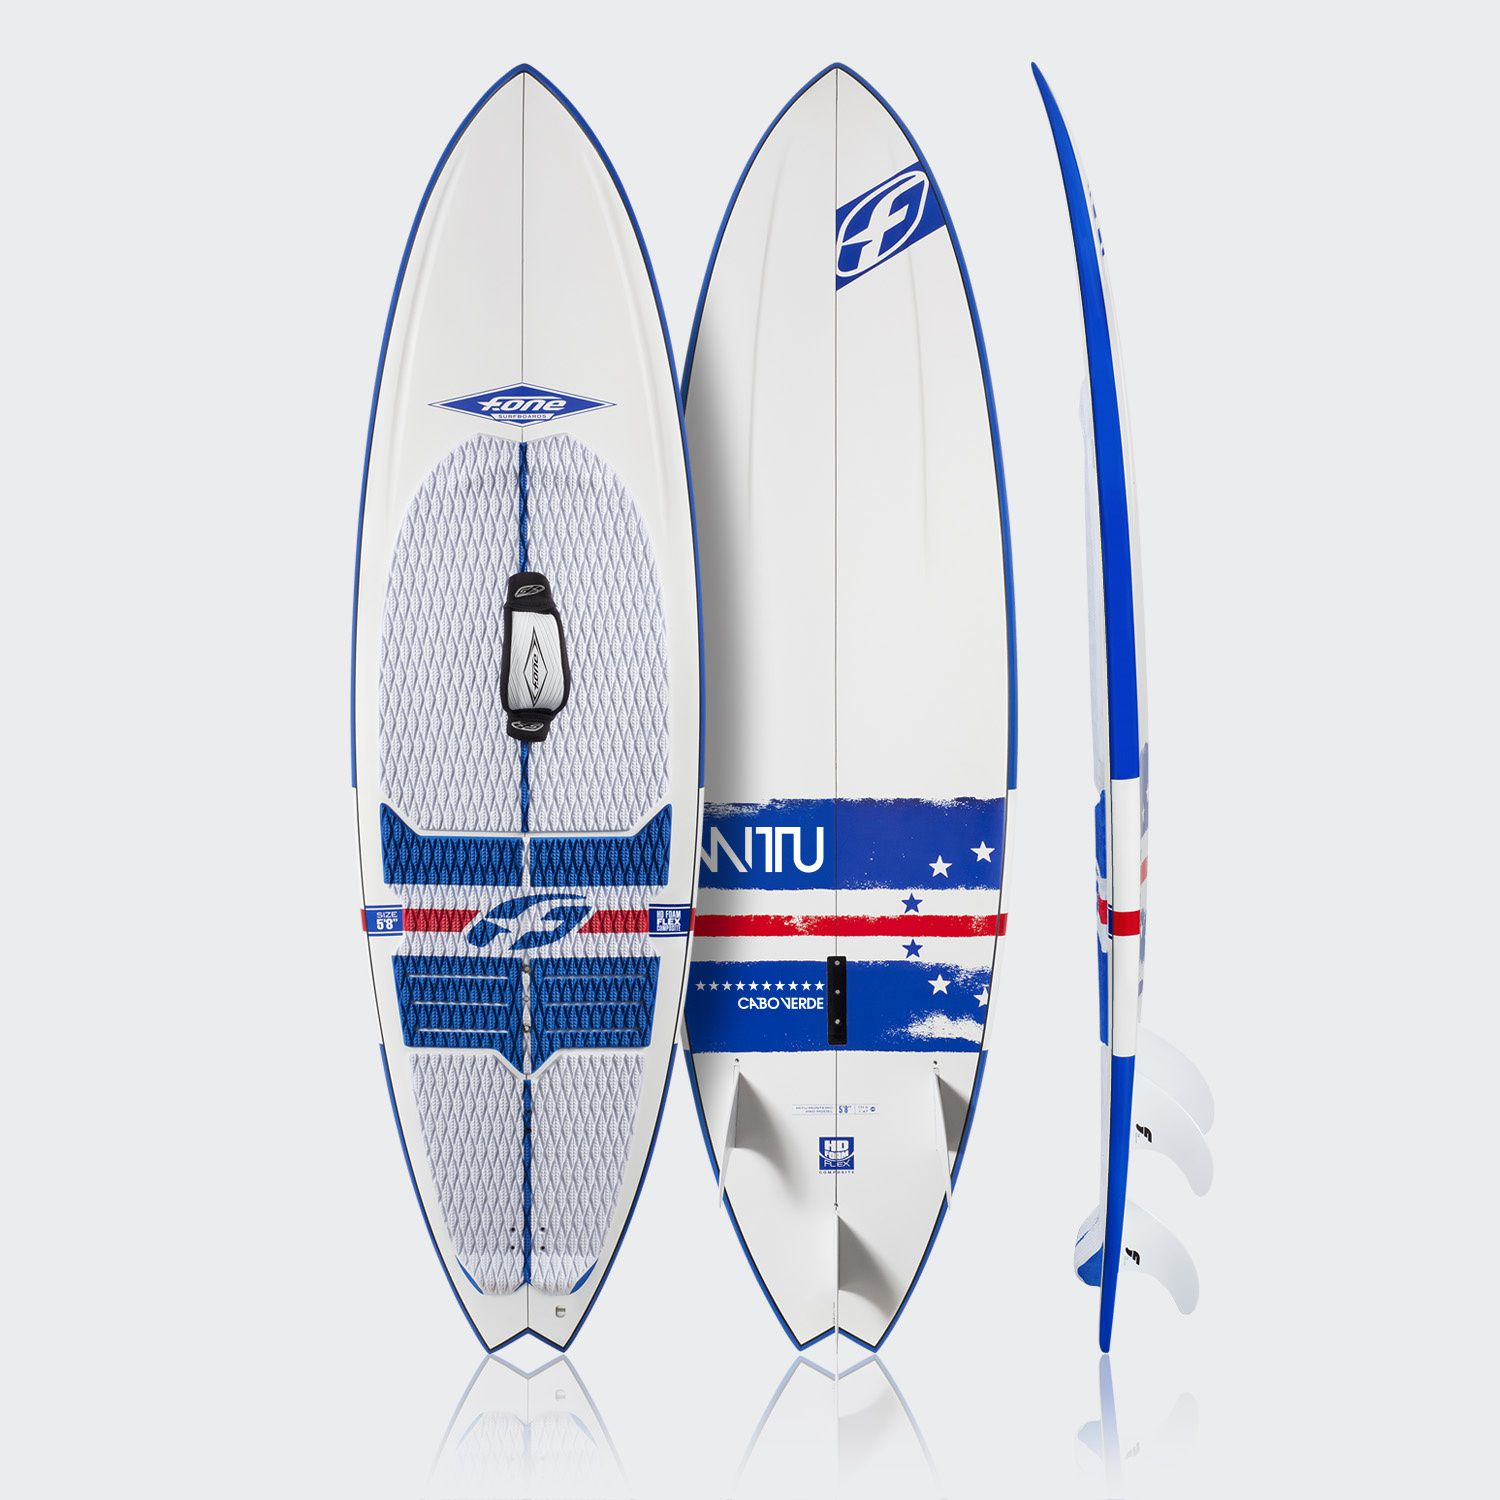 surf F-one Mitu convertible foil au shop Kites And Boards Grenoble